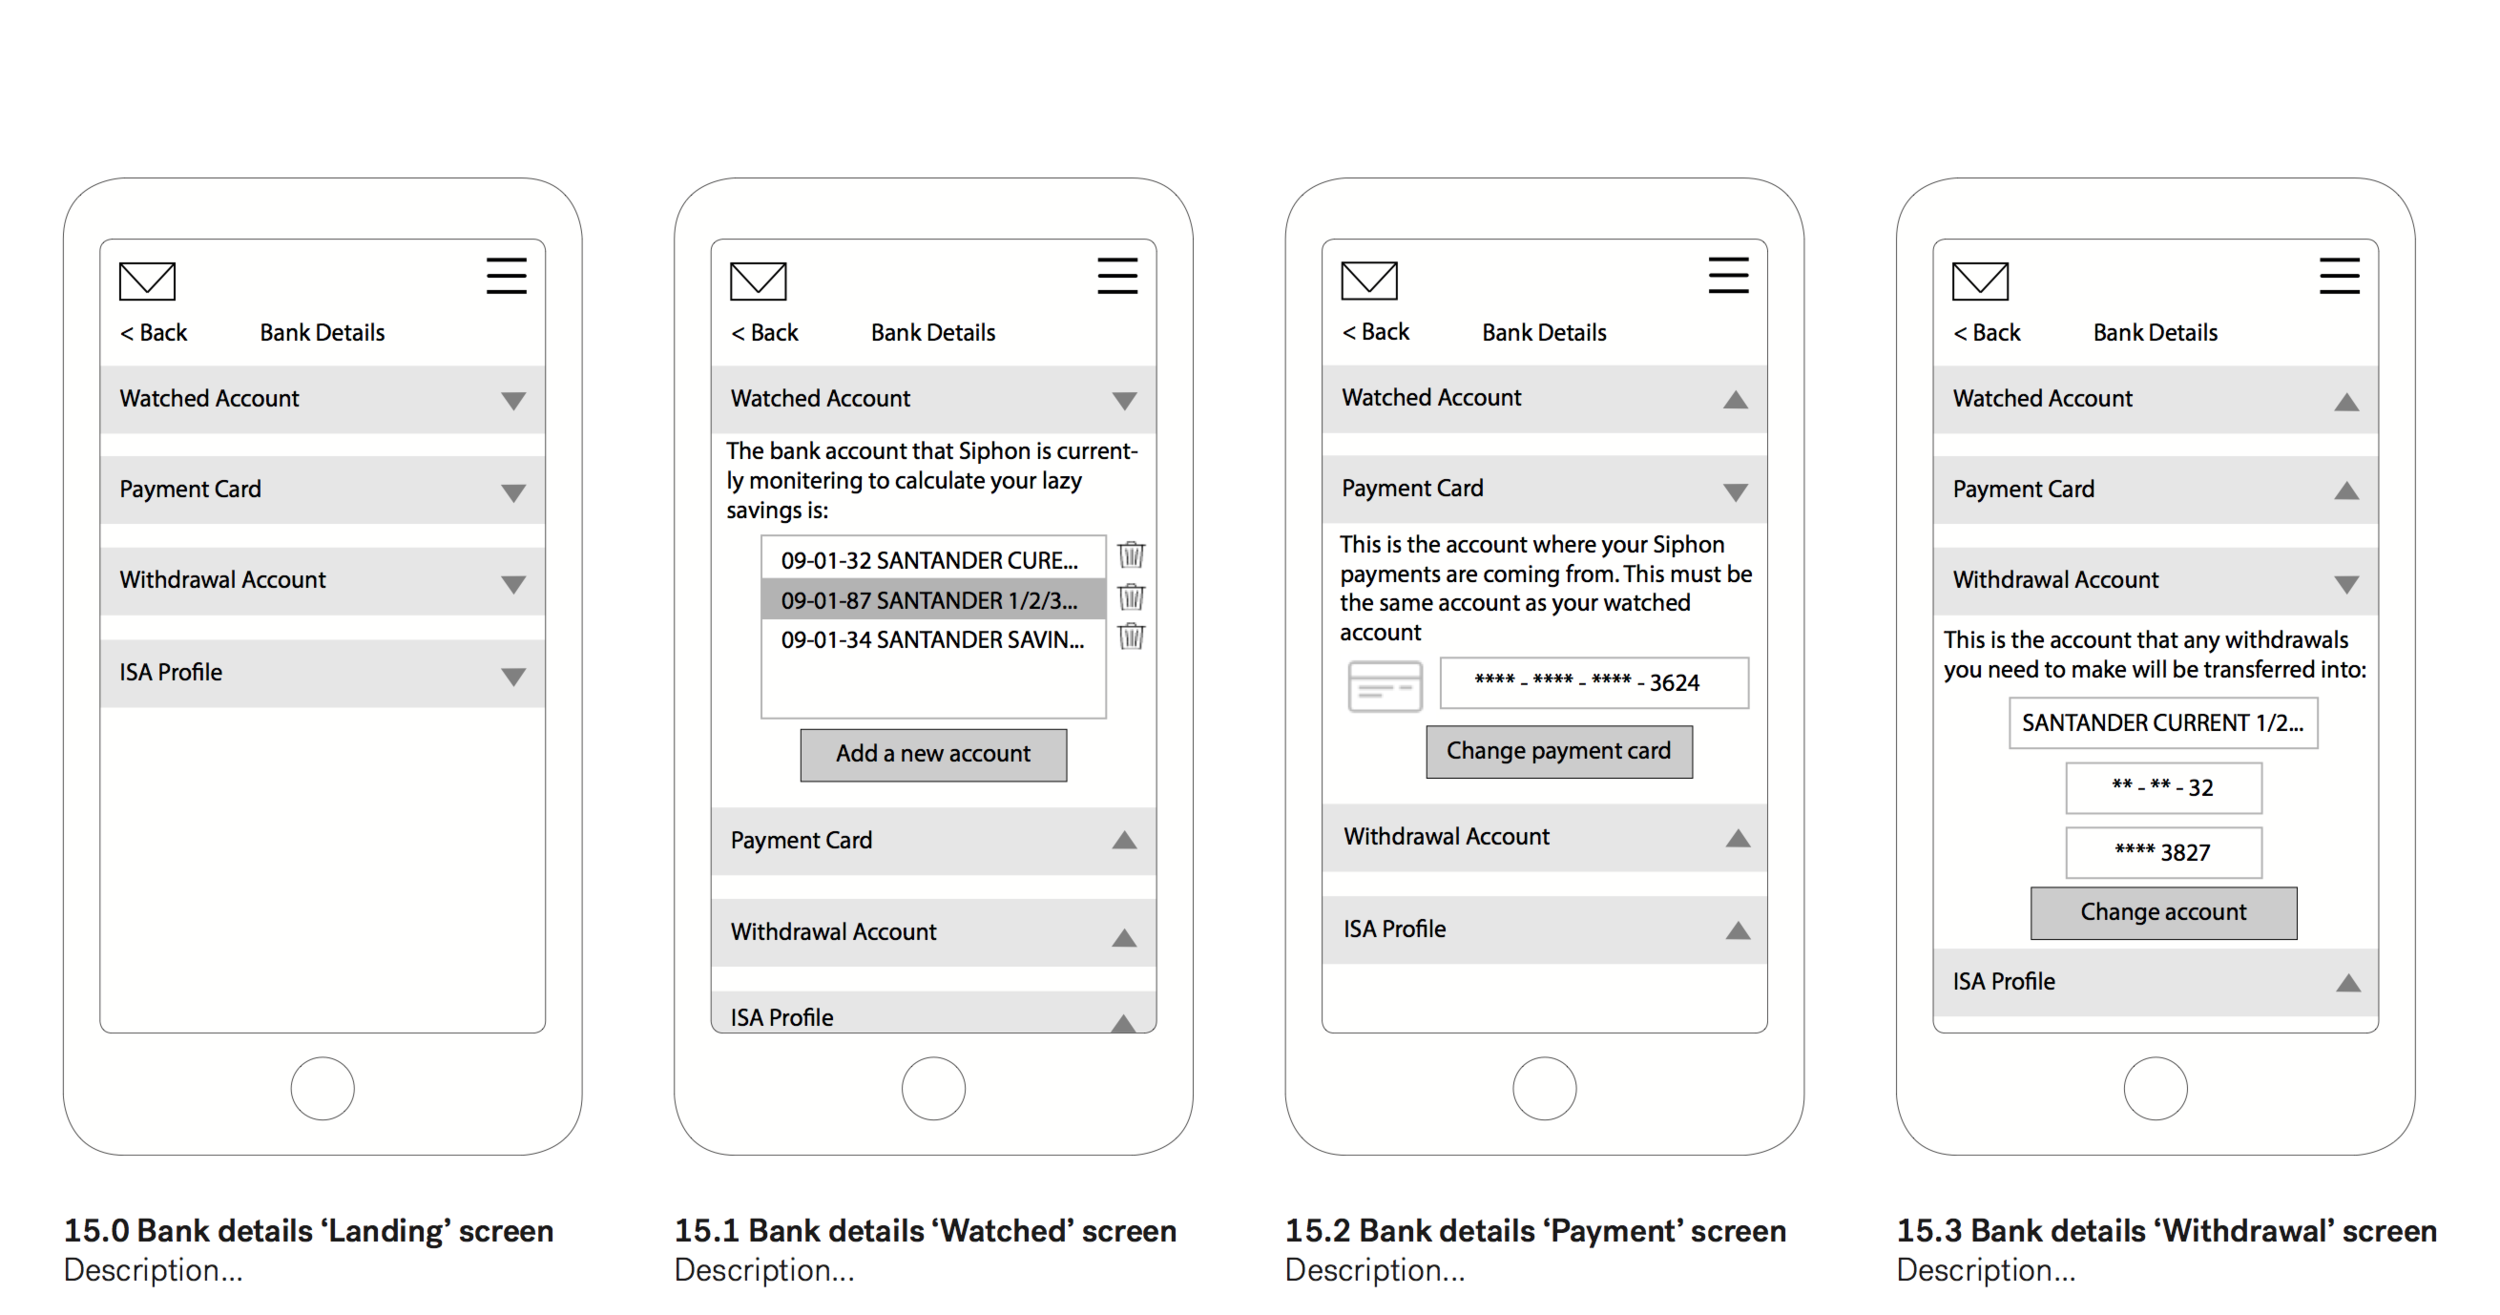 Some wireframes used to show the on-boarding process of Siphon